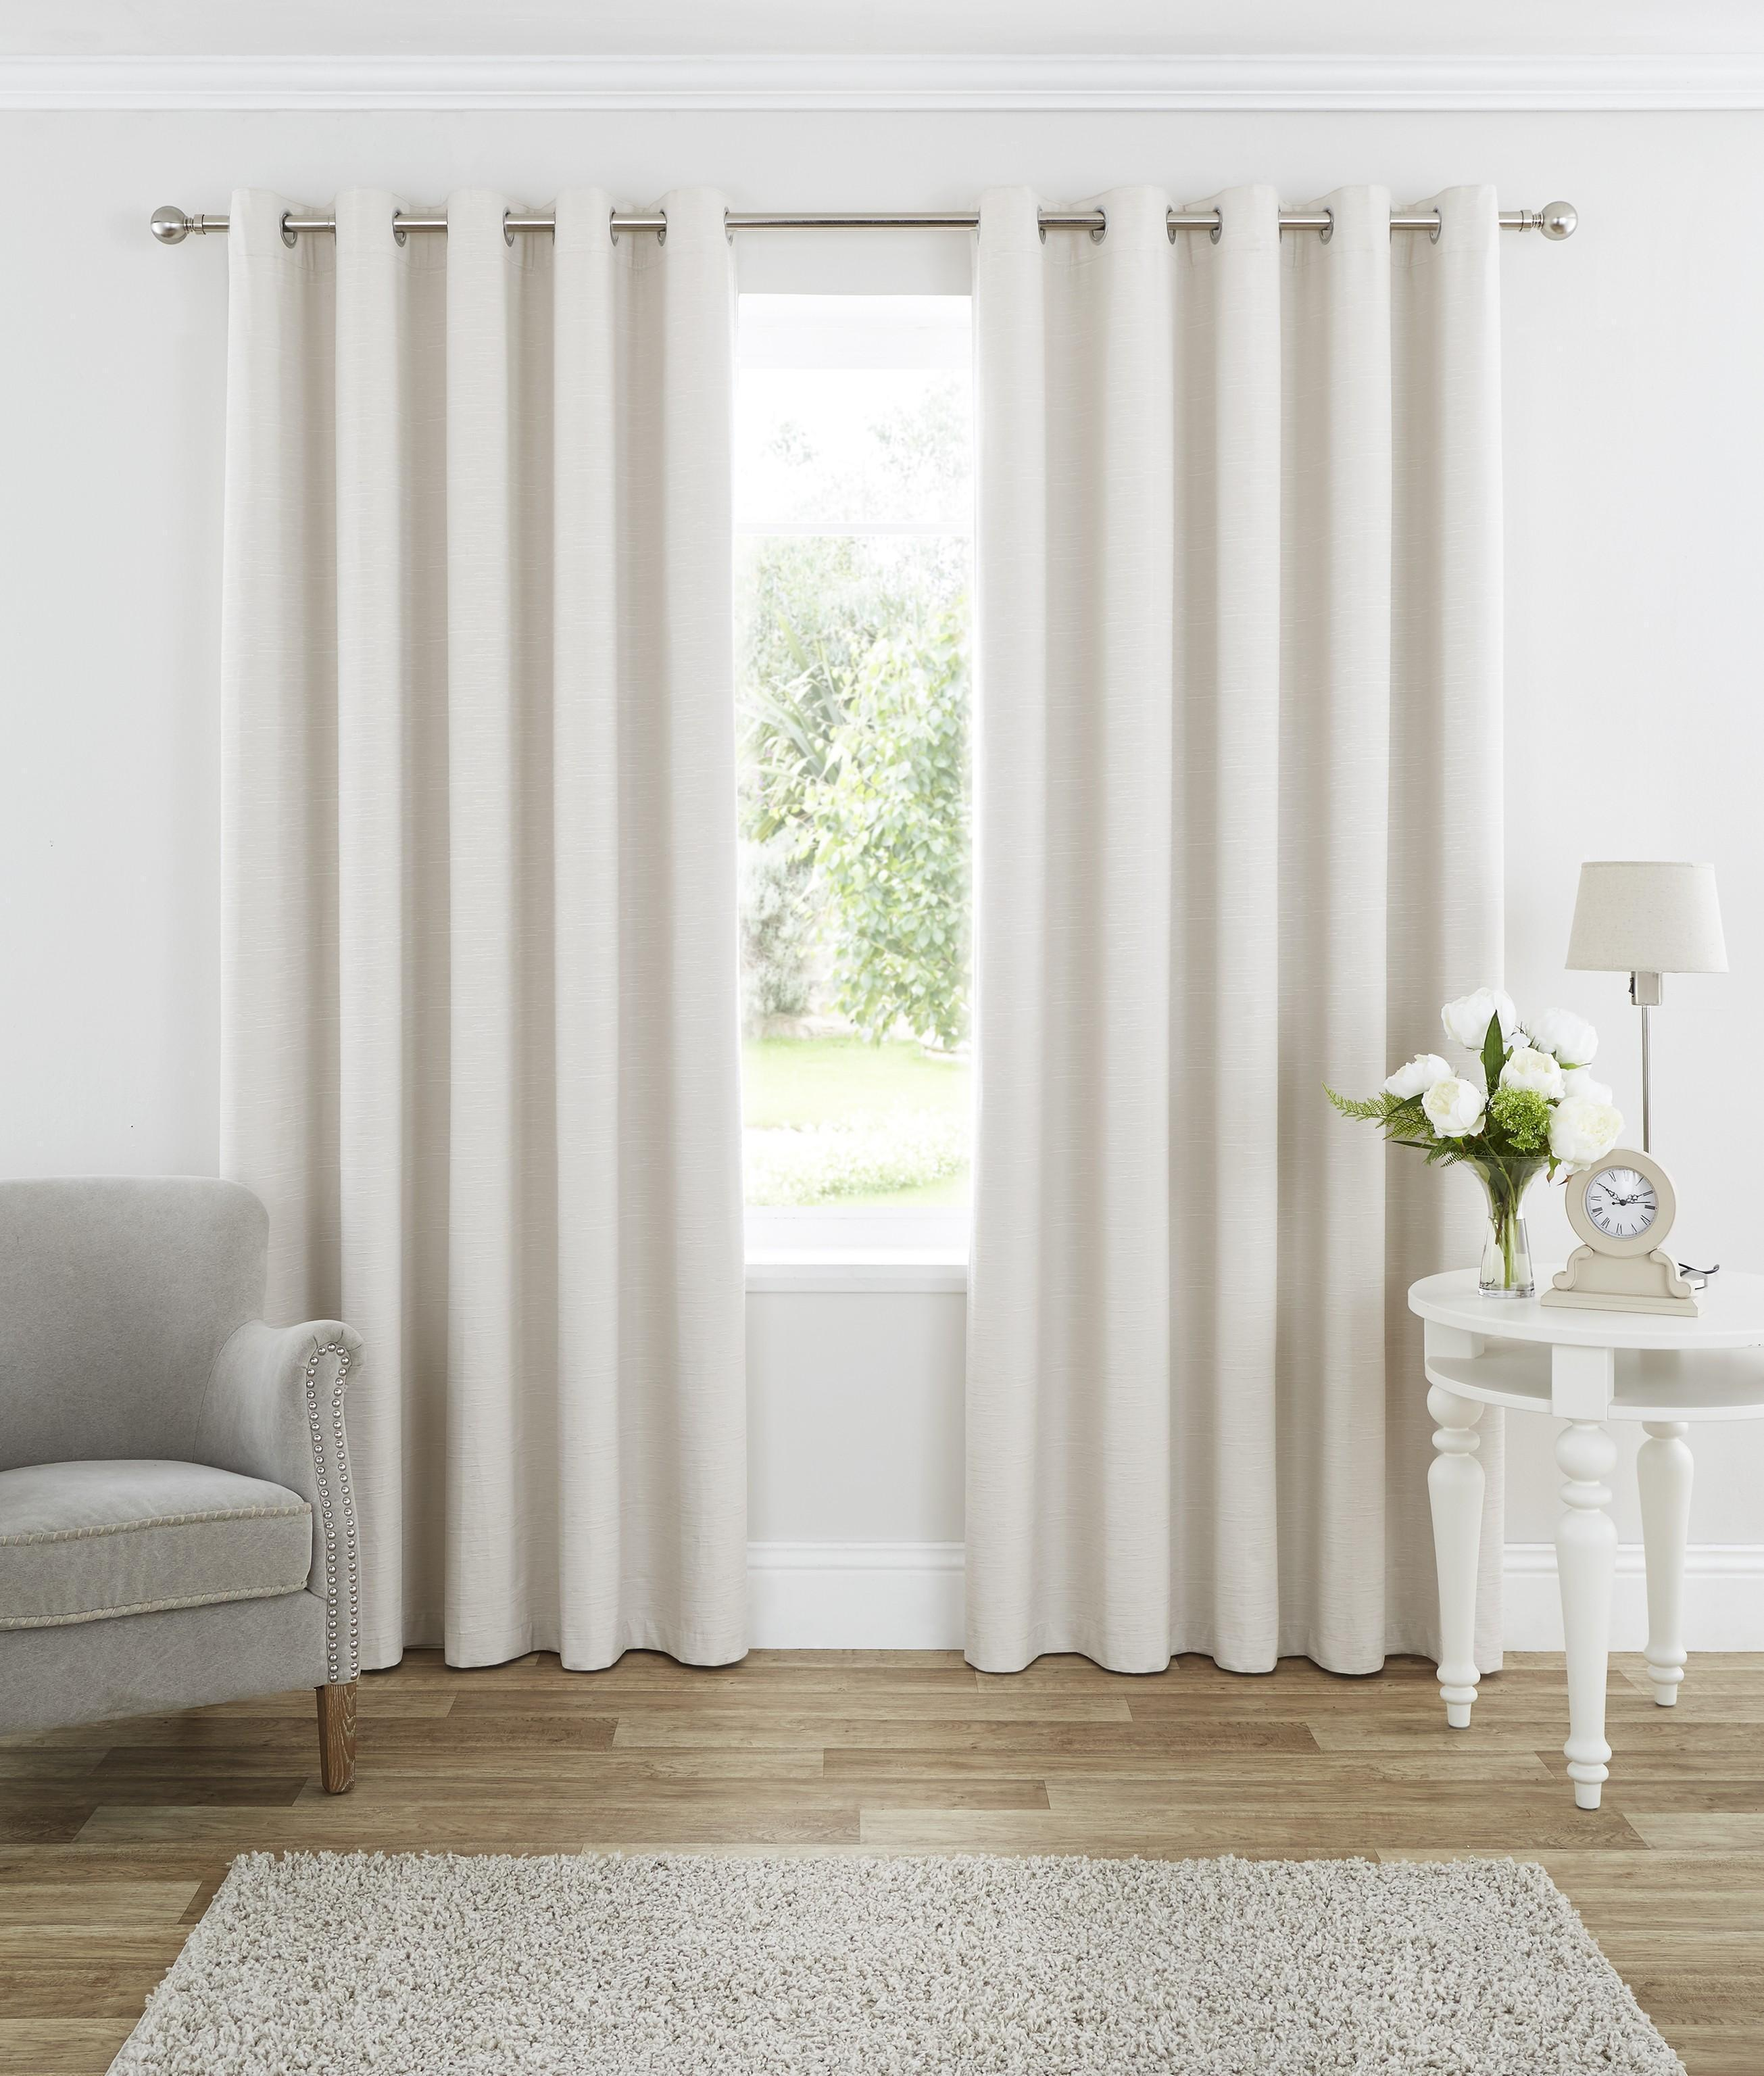 harmony blackout eyelet curtains cream ponden homes